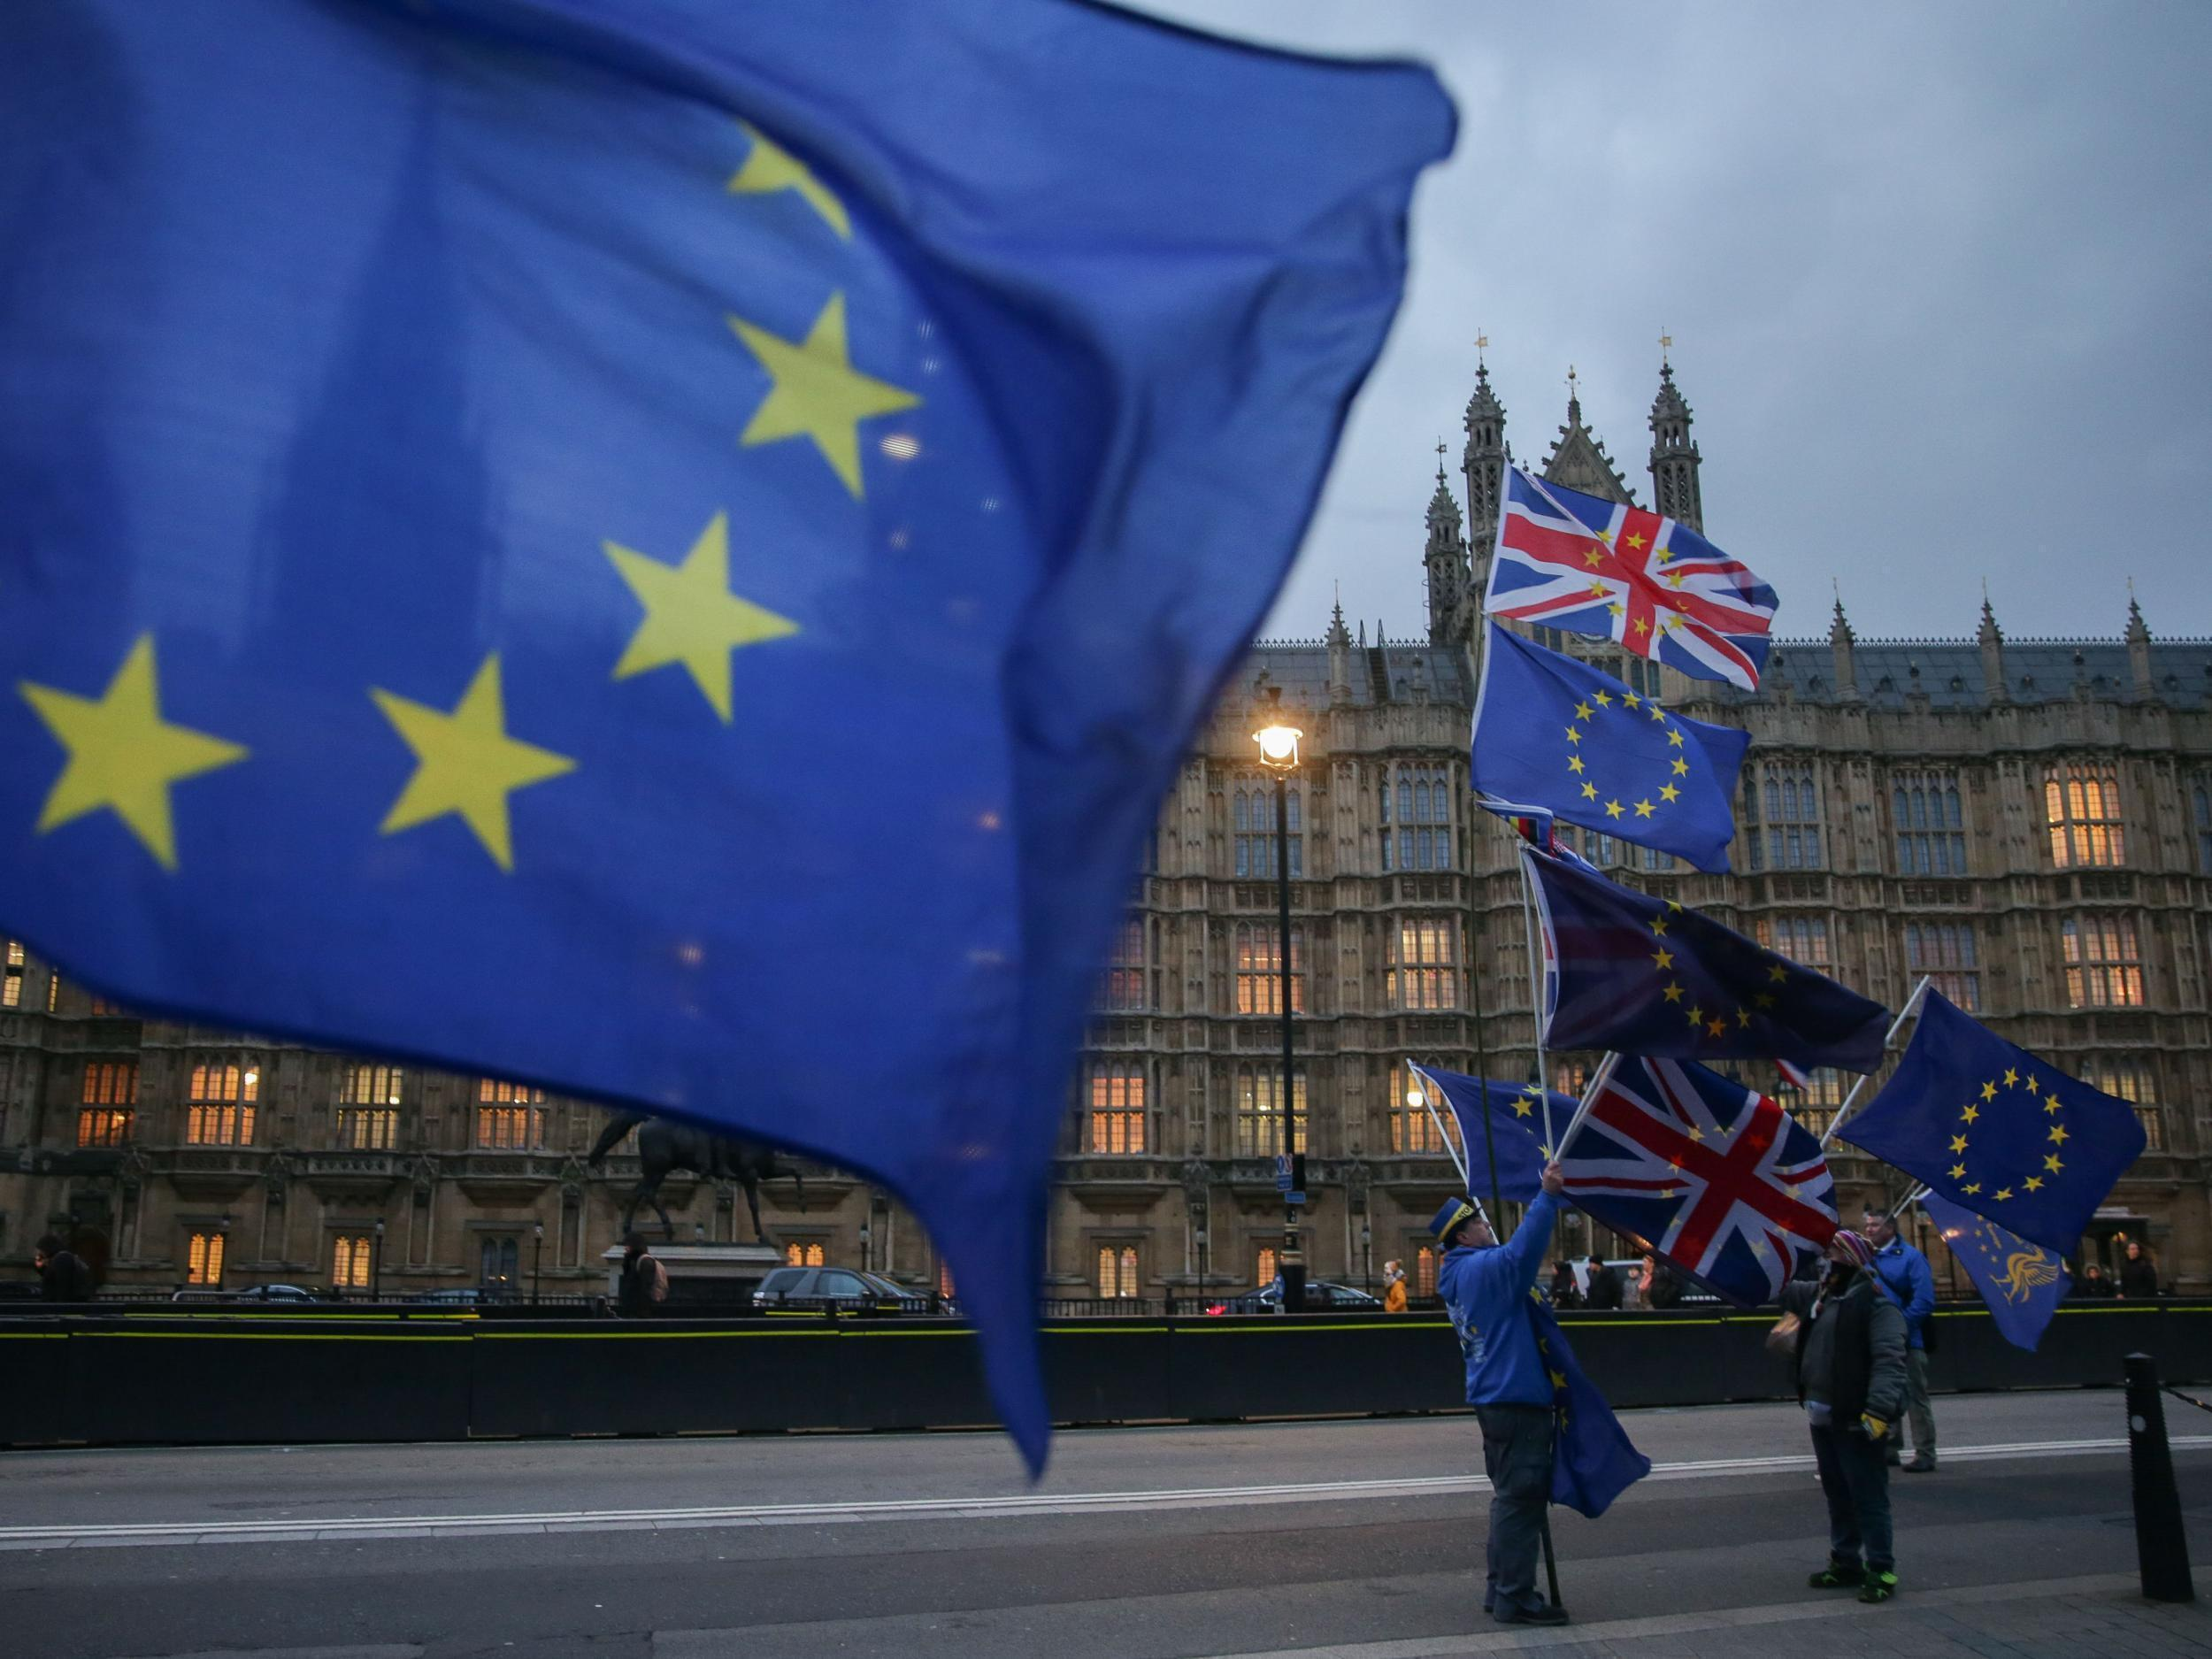 Brexit will 'substantially reduce rights in the UK' Amnesty International warns